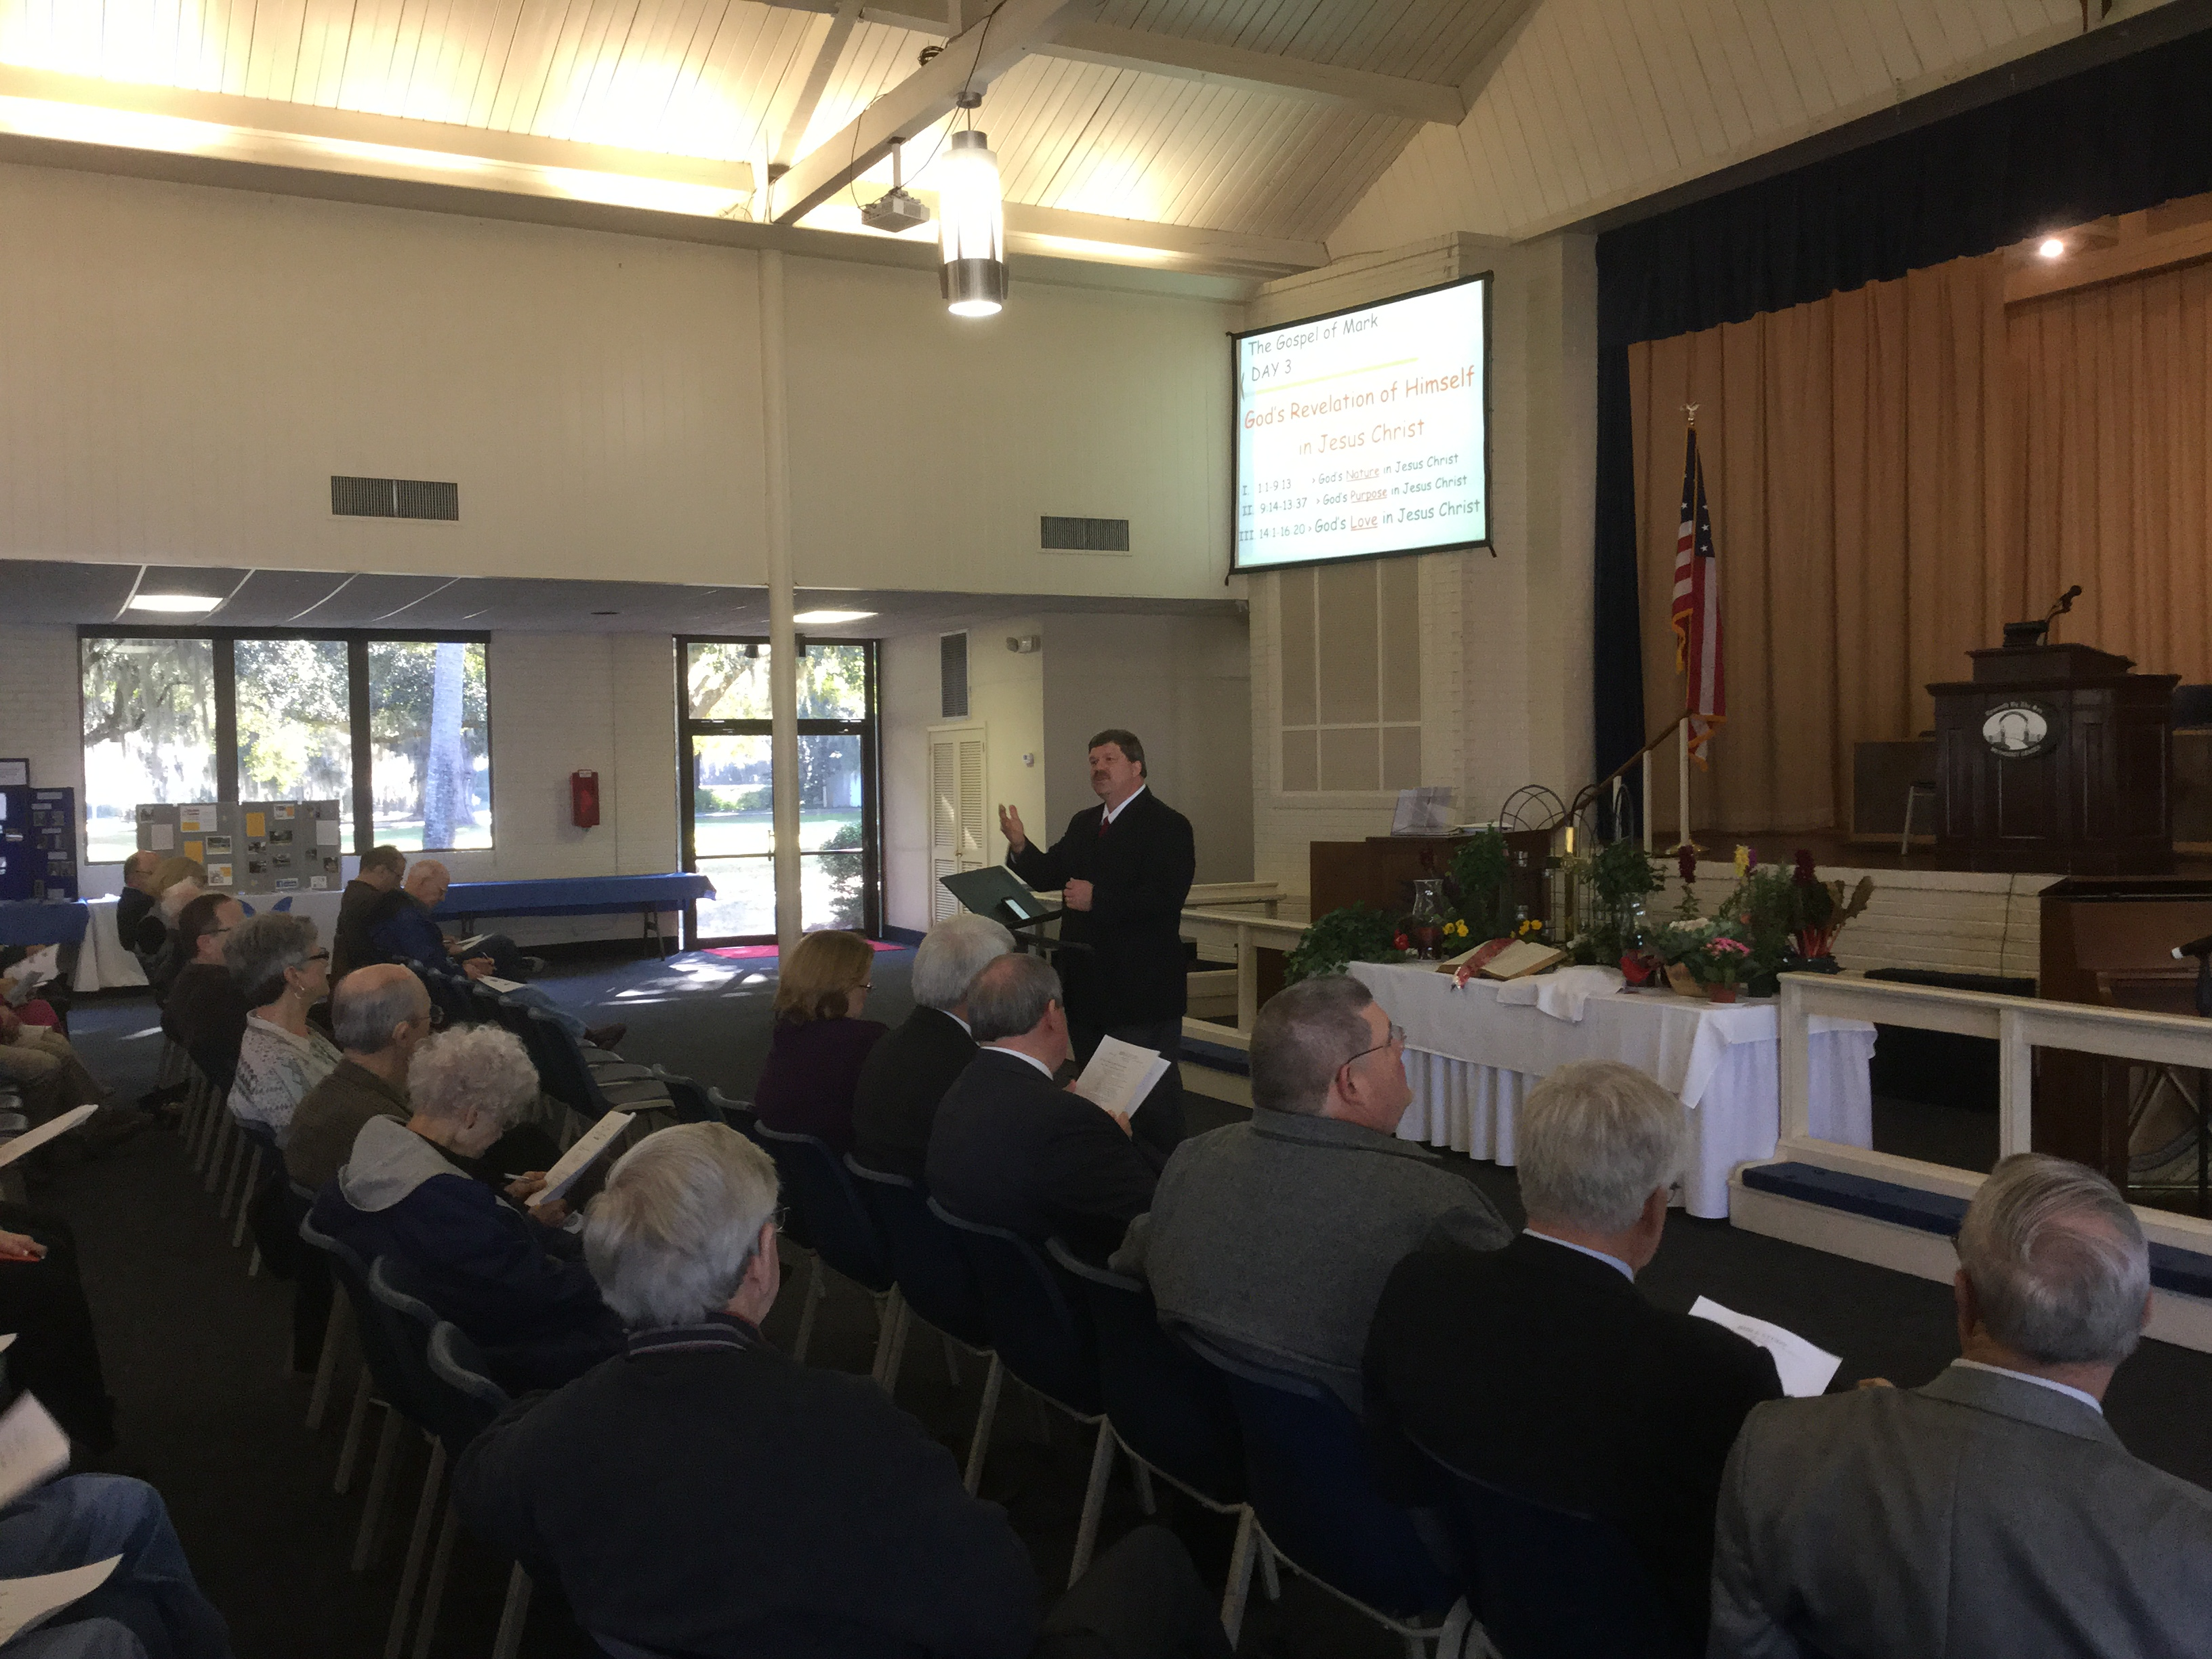 Rev. Chris Ramsey teaches Bible Study at WCM